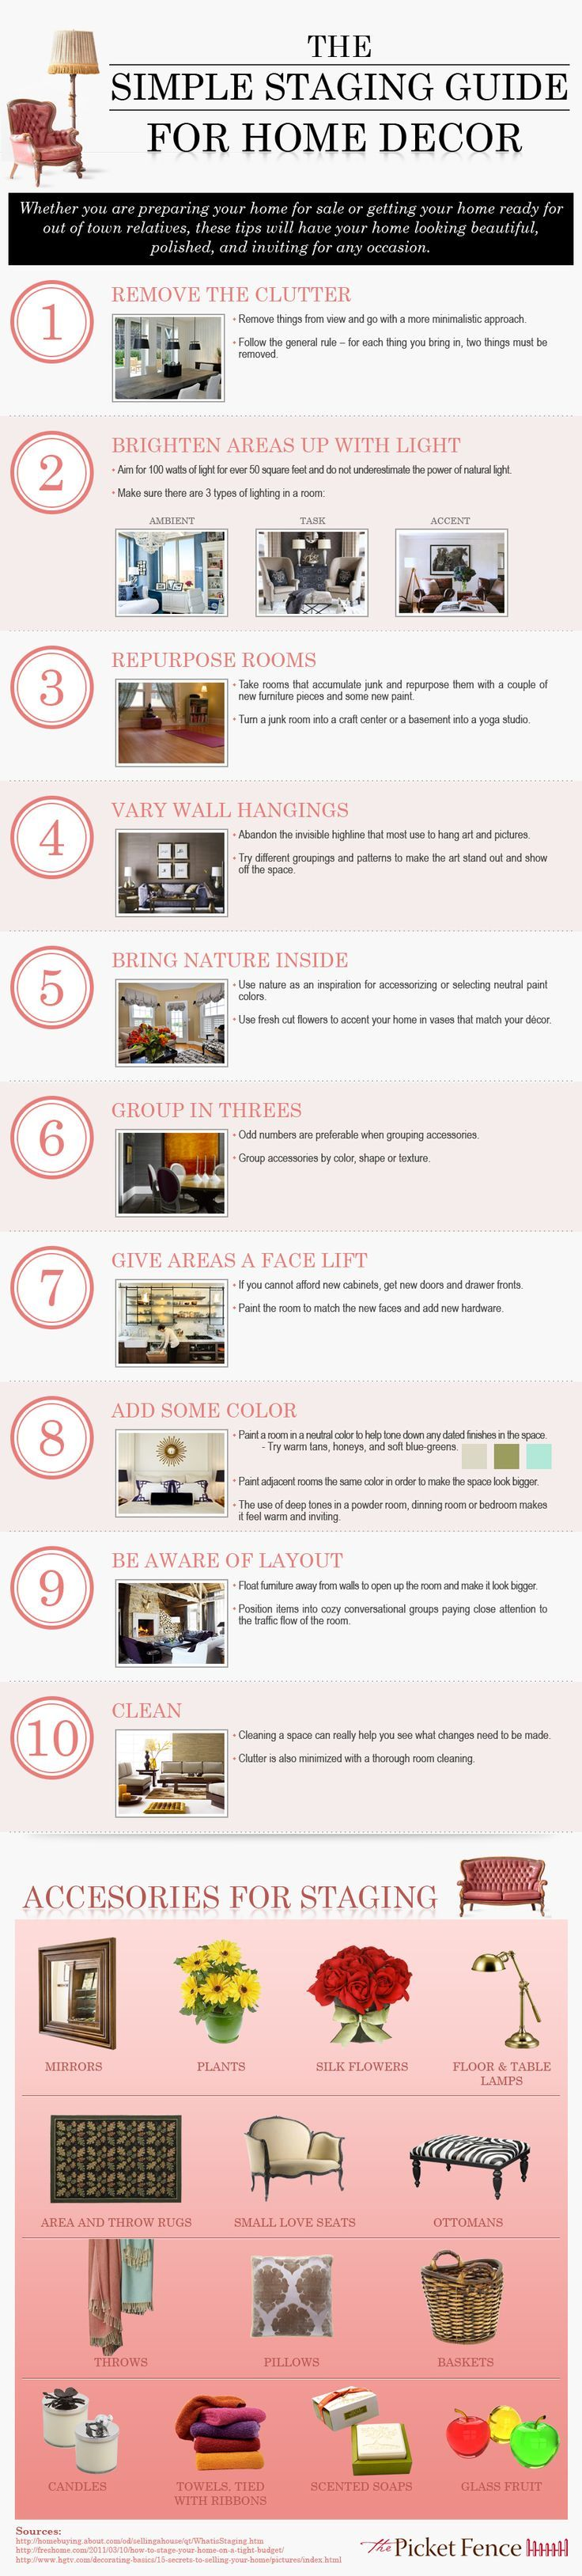 Whether you're getting ready to sell your home or just want a fresh new look for a single room, here are some great home staging ideas that are easy to do. | Robyn Porter, REALTOR | Your Real Estate Agent for Life® | Washington DC metro area | 703-963-0142 |  #homedecor